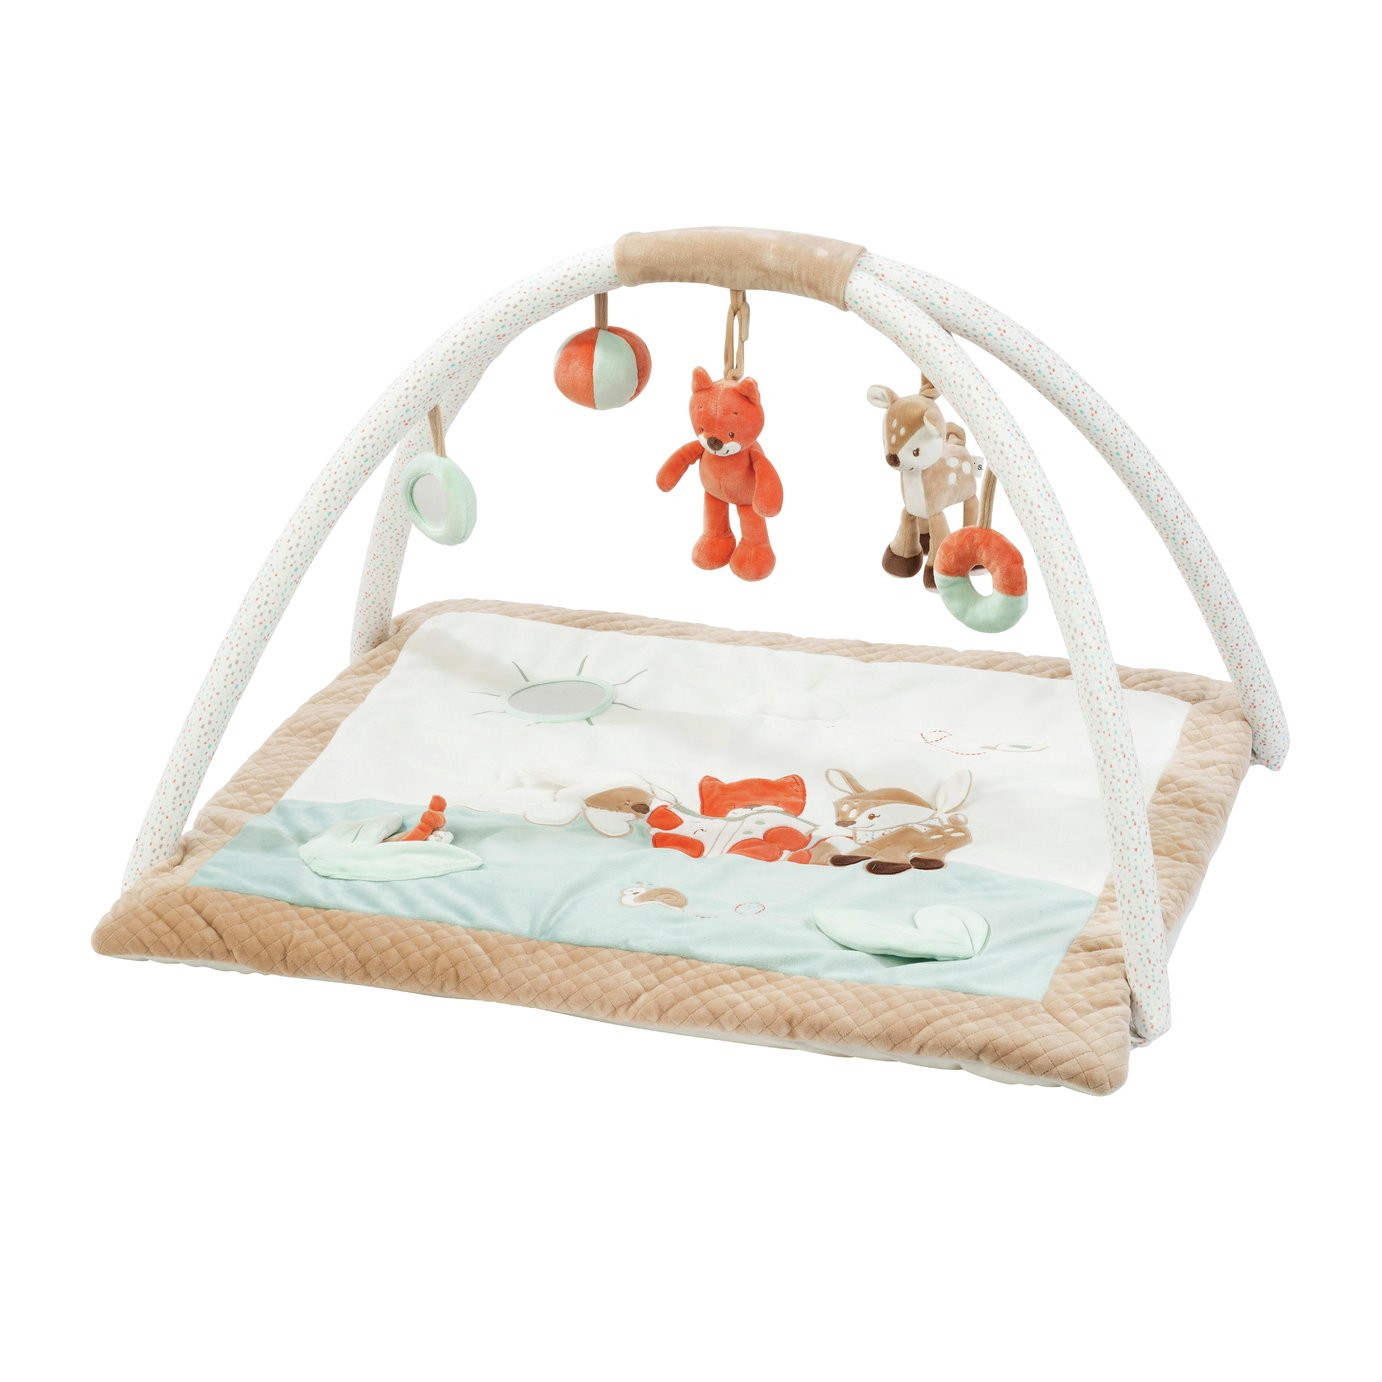 Nattou Fanny The Deer and Oscar the Fox Playmat